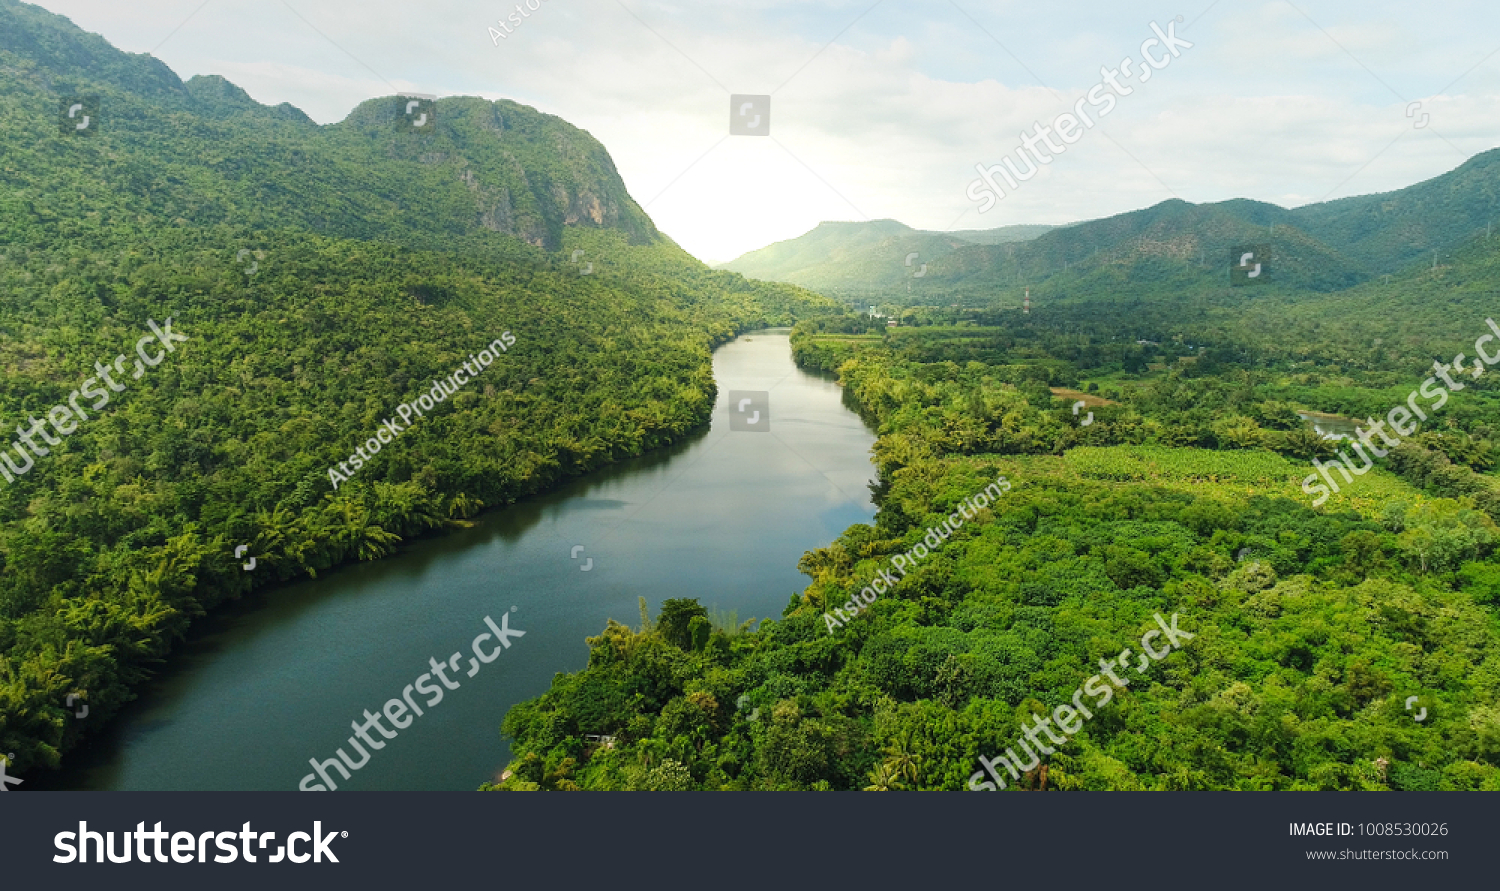 Beautiful natural scenery of river in southeast Asia tropical green forest  with mountains in background, aerial view drone shot #1008530026